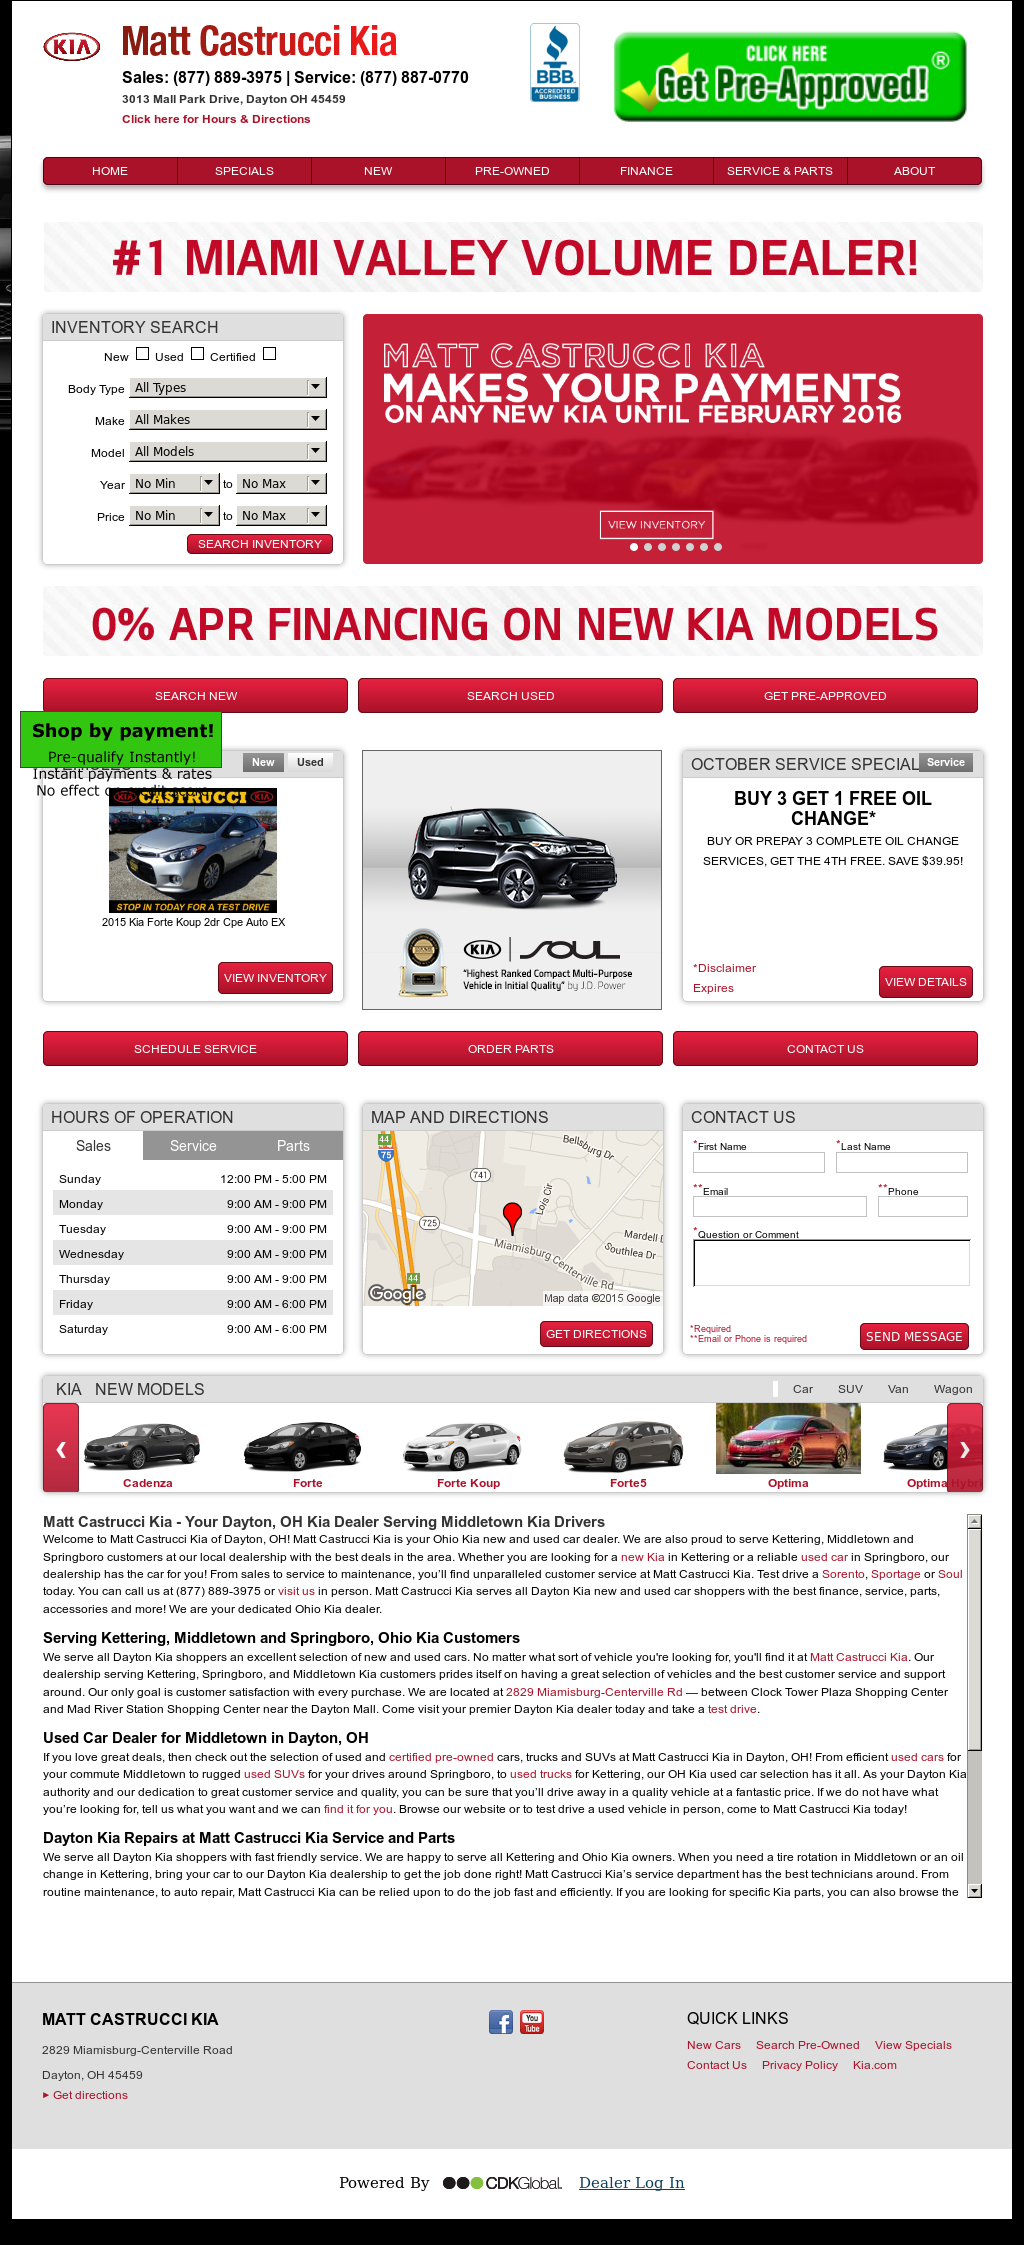 drive optima test the youwheel car expert get home and hybrid kia your